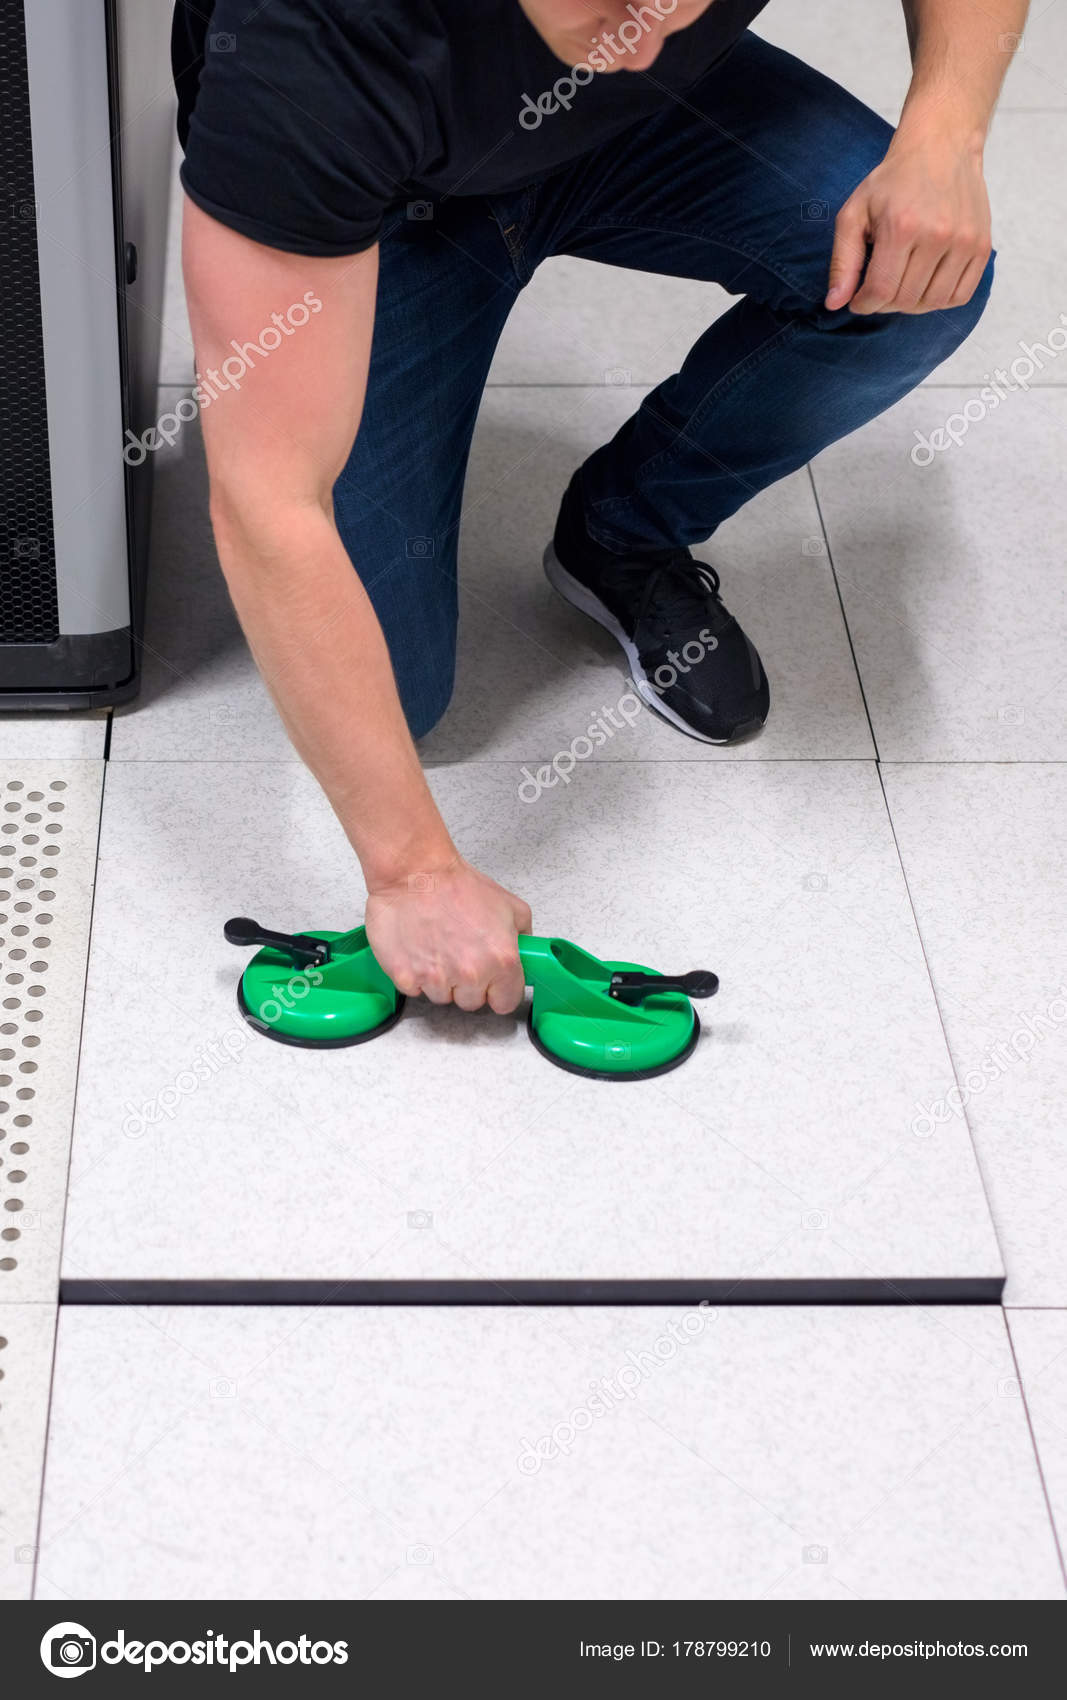 Computer Engineer Pulling Floor Tile Using Suction Cups In Datac